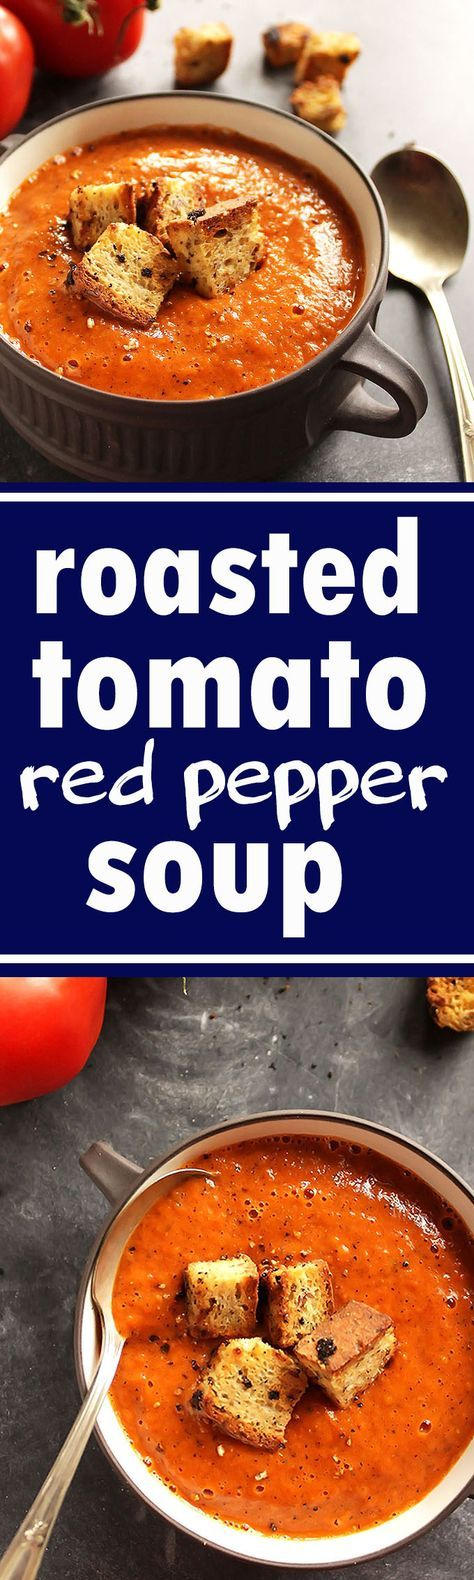 Healing Roasted Tomato and Red Pepper Soup - Creamy soup bursting with tomatoes, roasted red peppers, onion, and garlic. This recipe is EASY to make! We LOVE this soup in the fall/winter. Vegan/Gluten free | robustrecipes.com